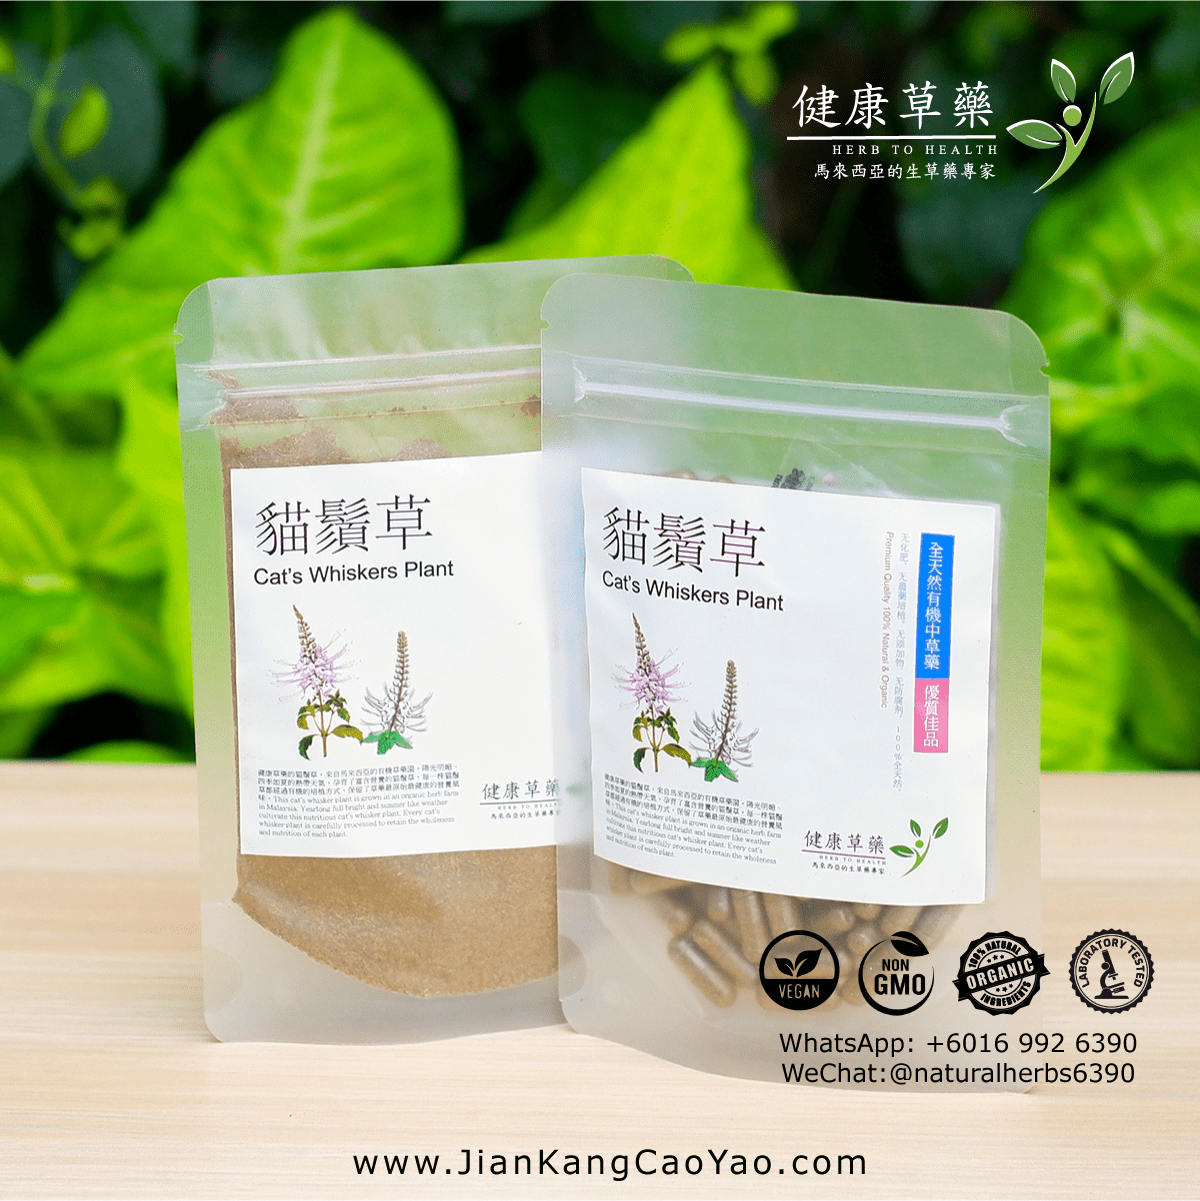 貓鬚草 Cat's Whiskers Plant – Misai Kucing